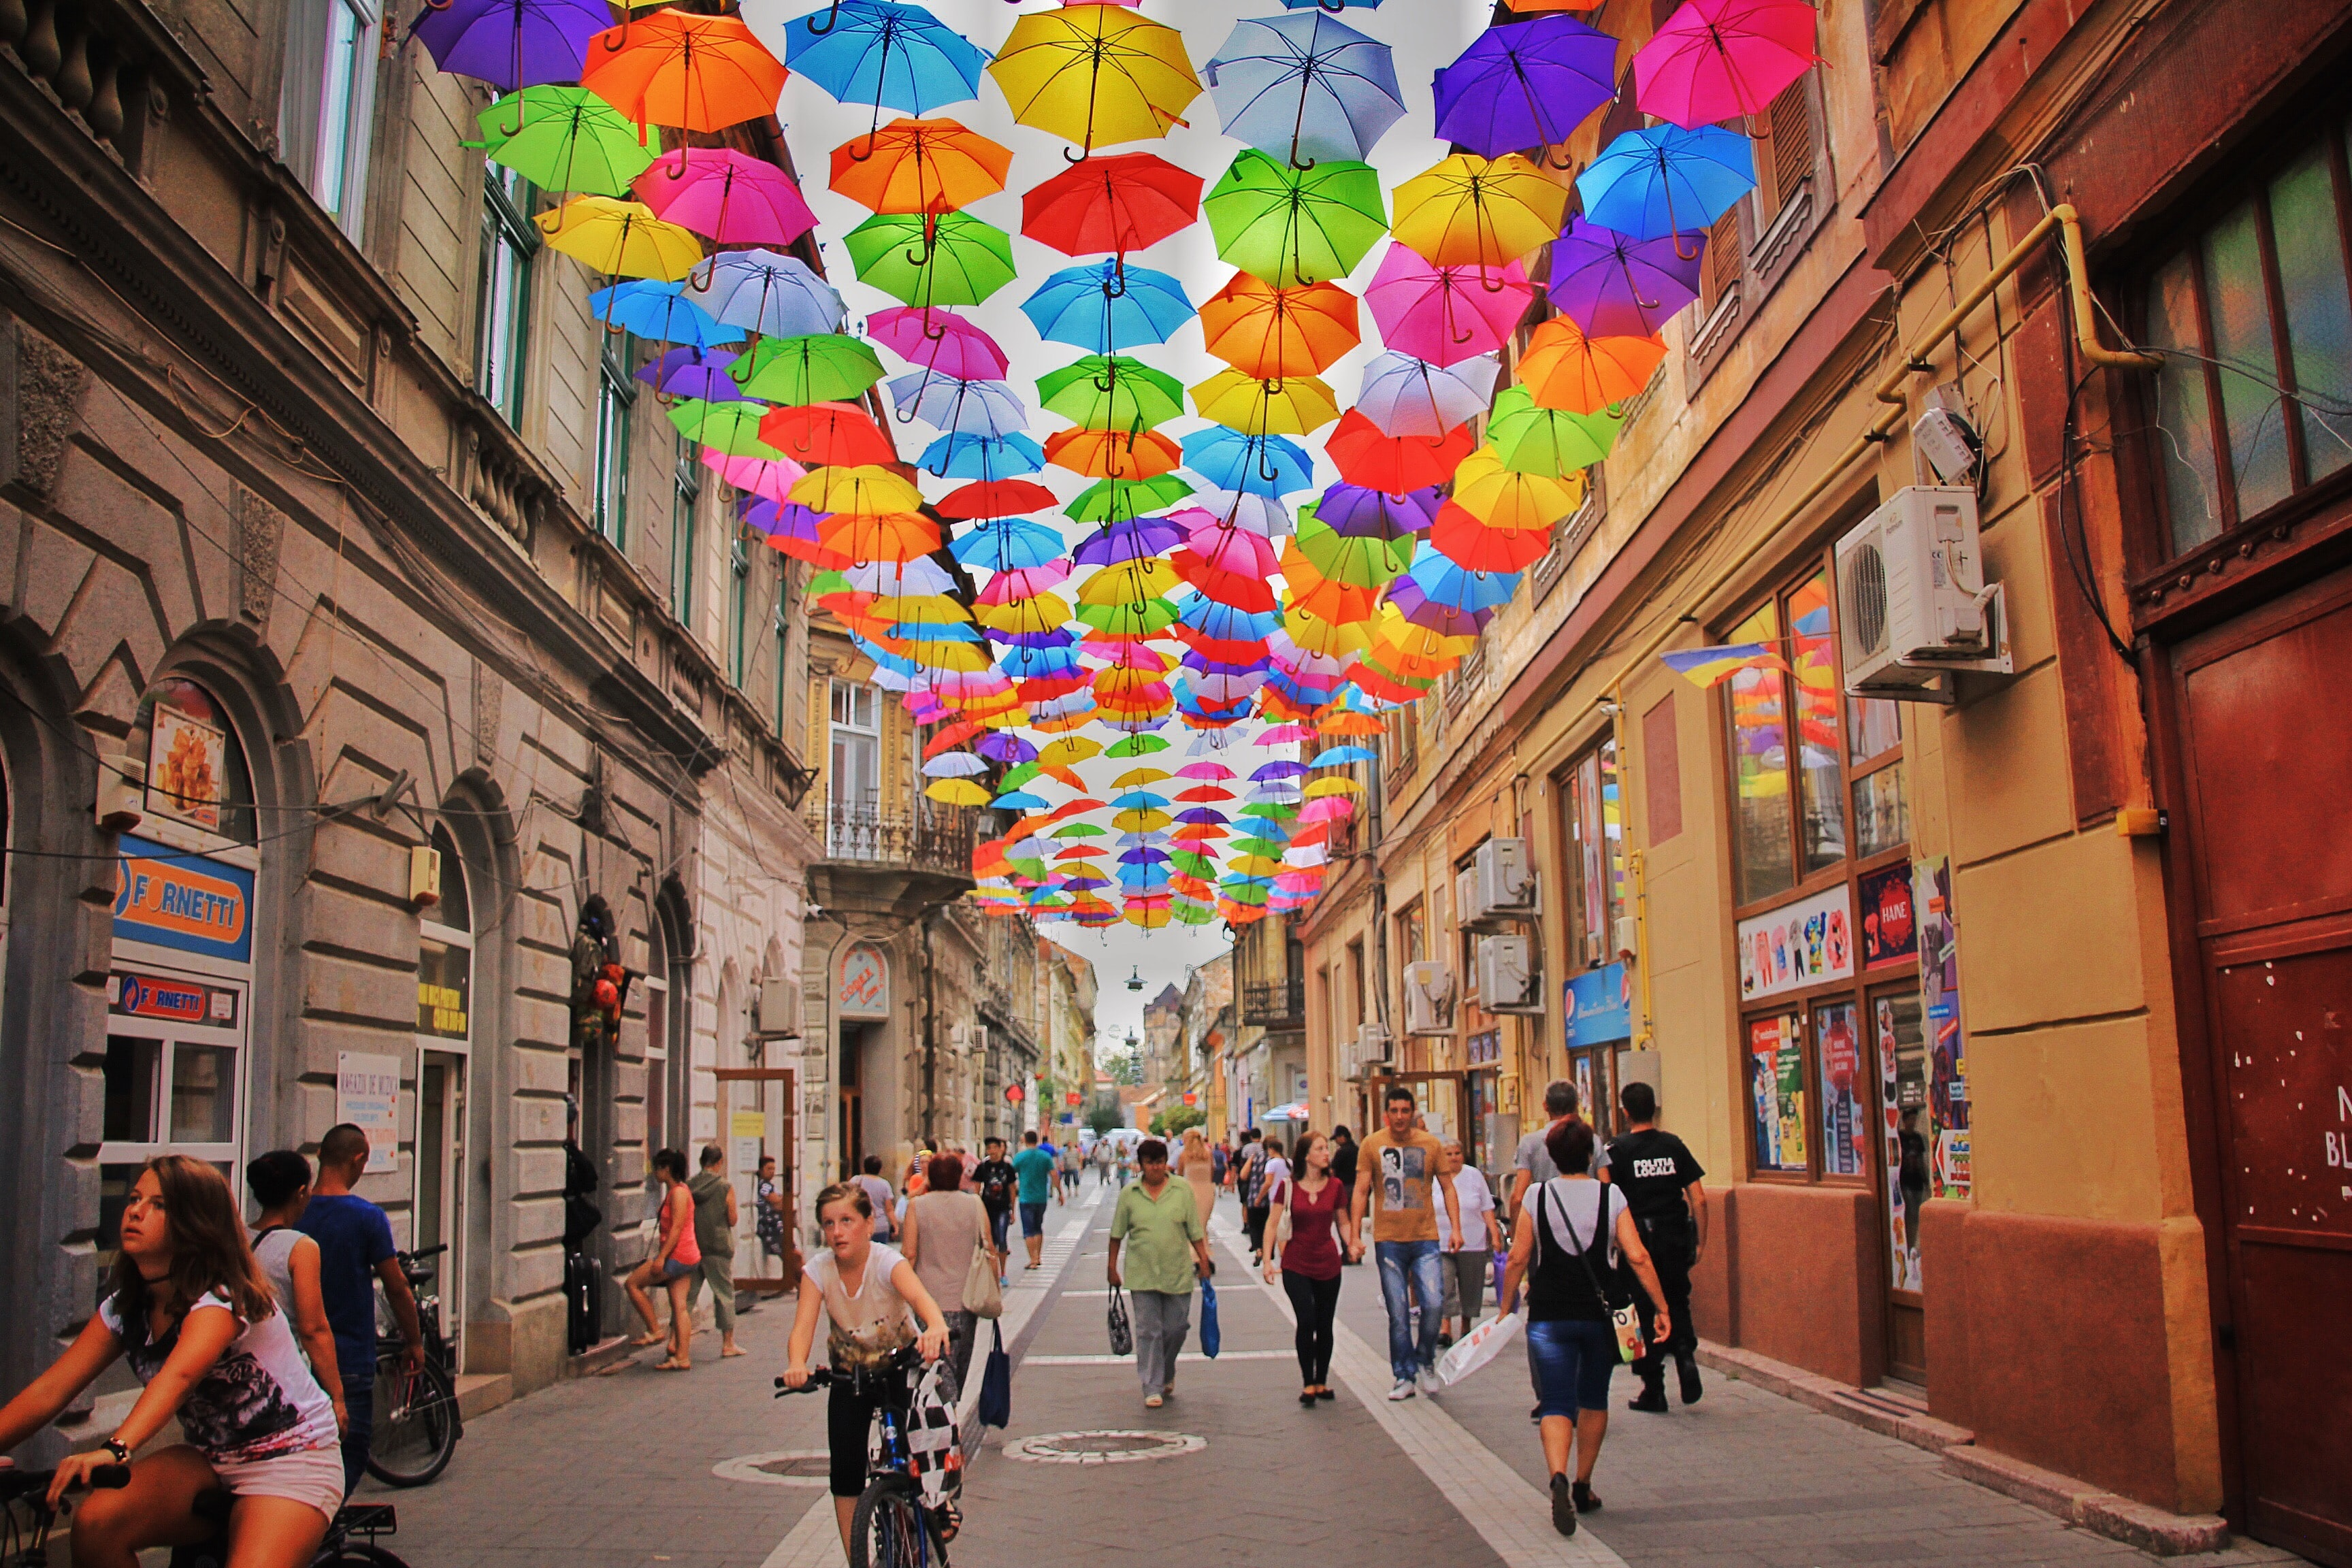 assorted-color umbrella hanged above pathway near houses